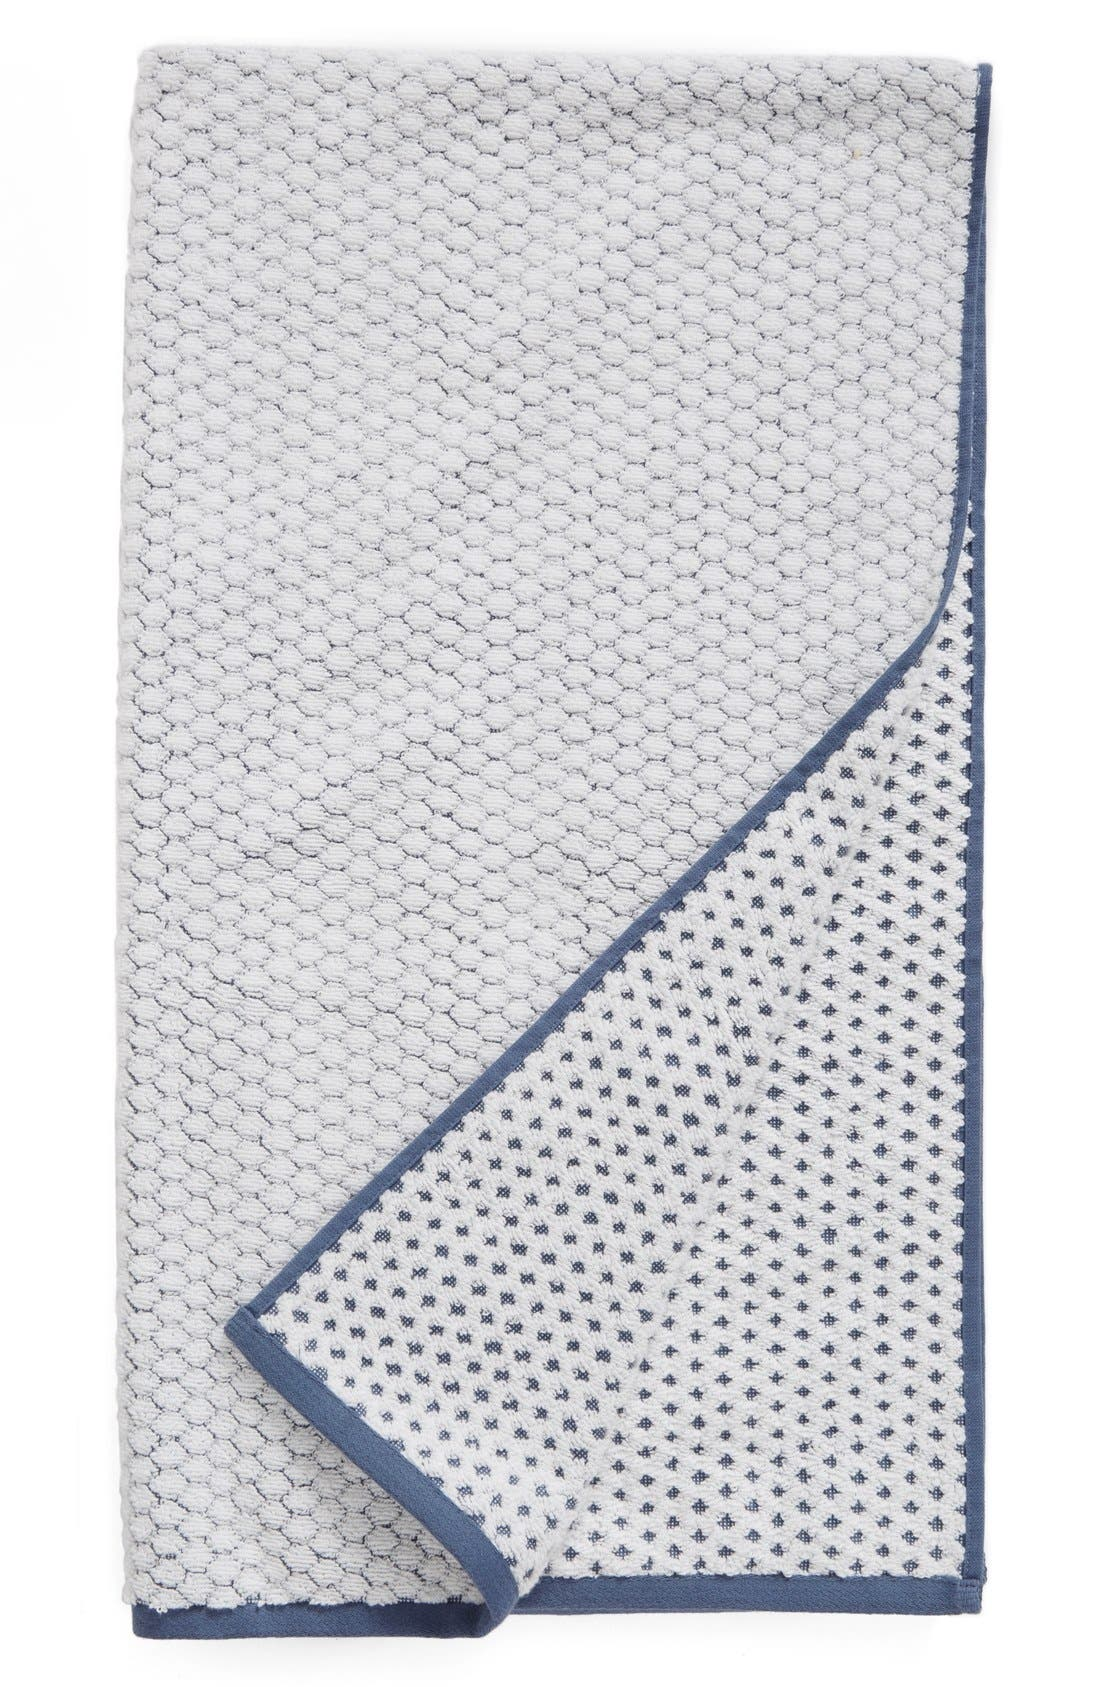 Main Image - Nordstrom at Home Cobble Bath Towel (2 for $49)